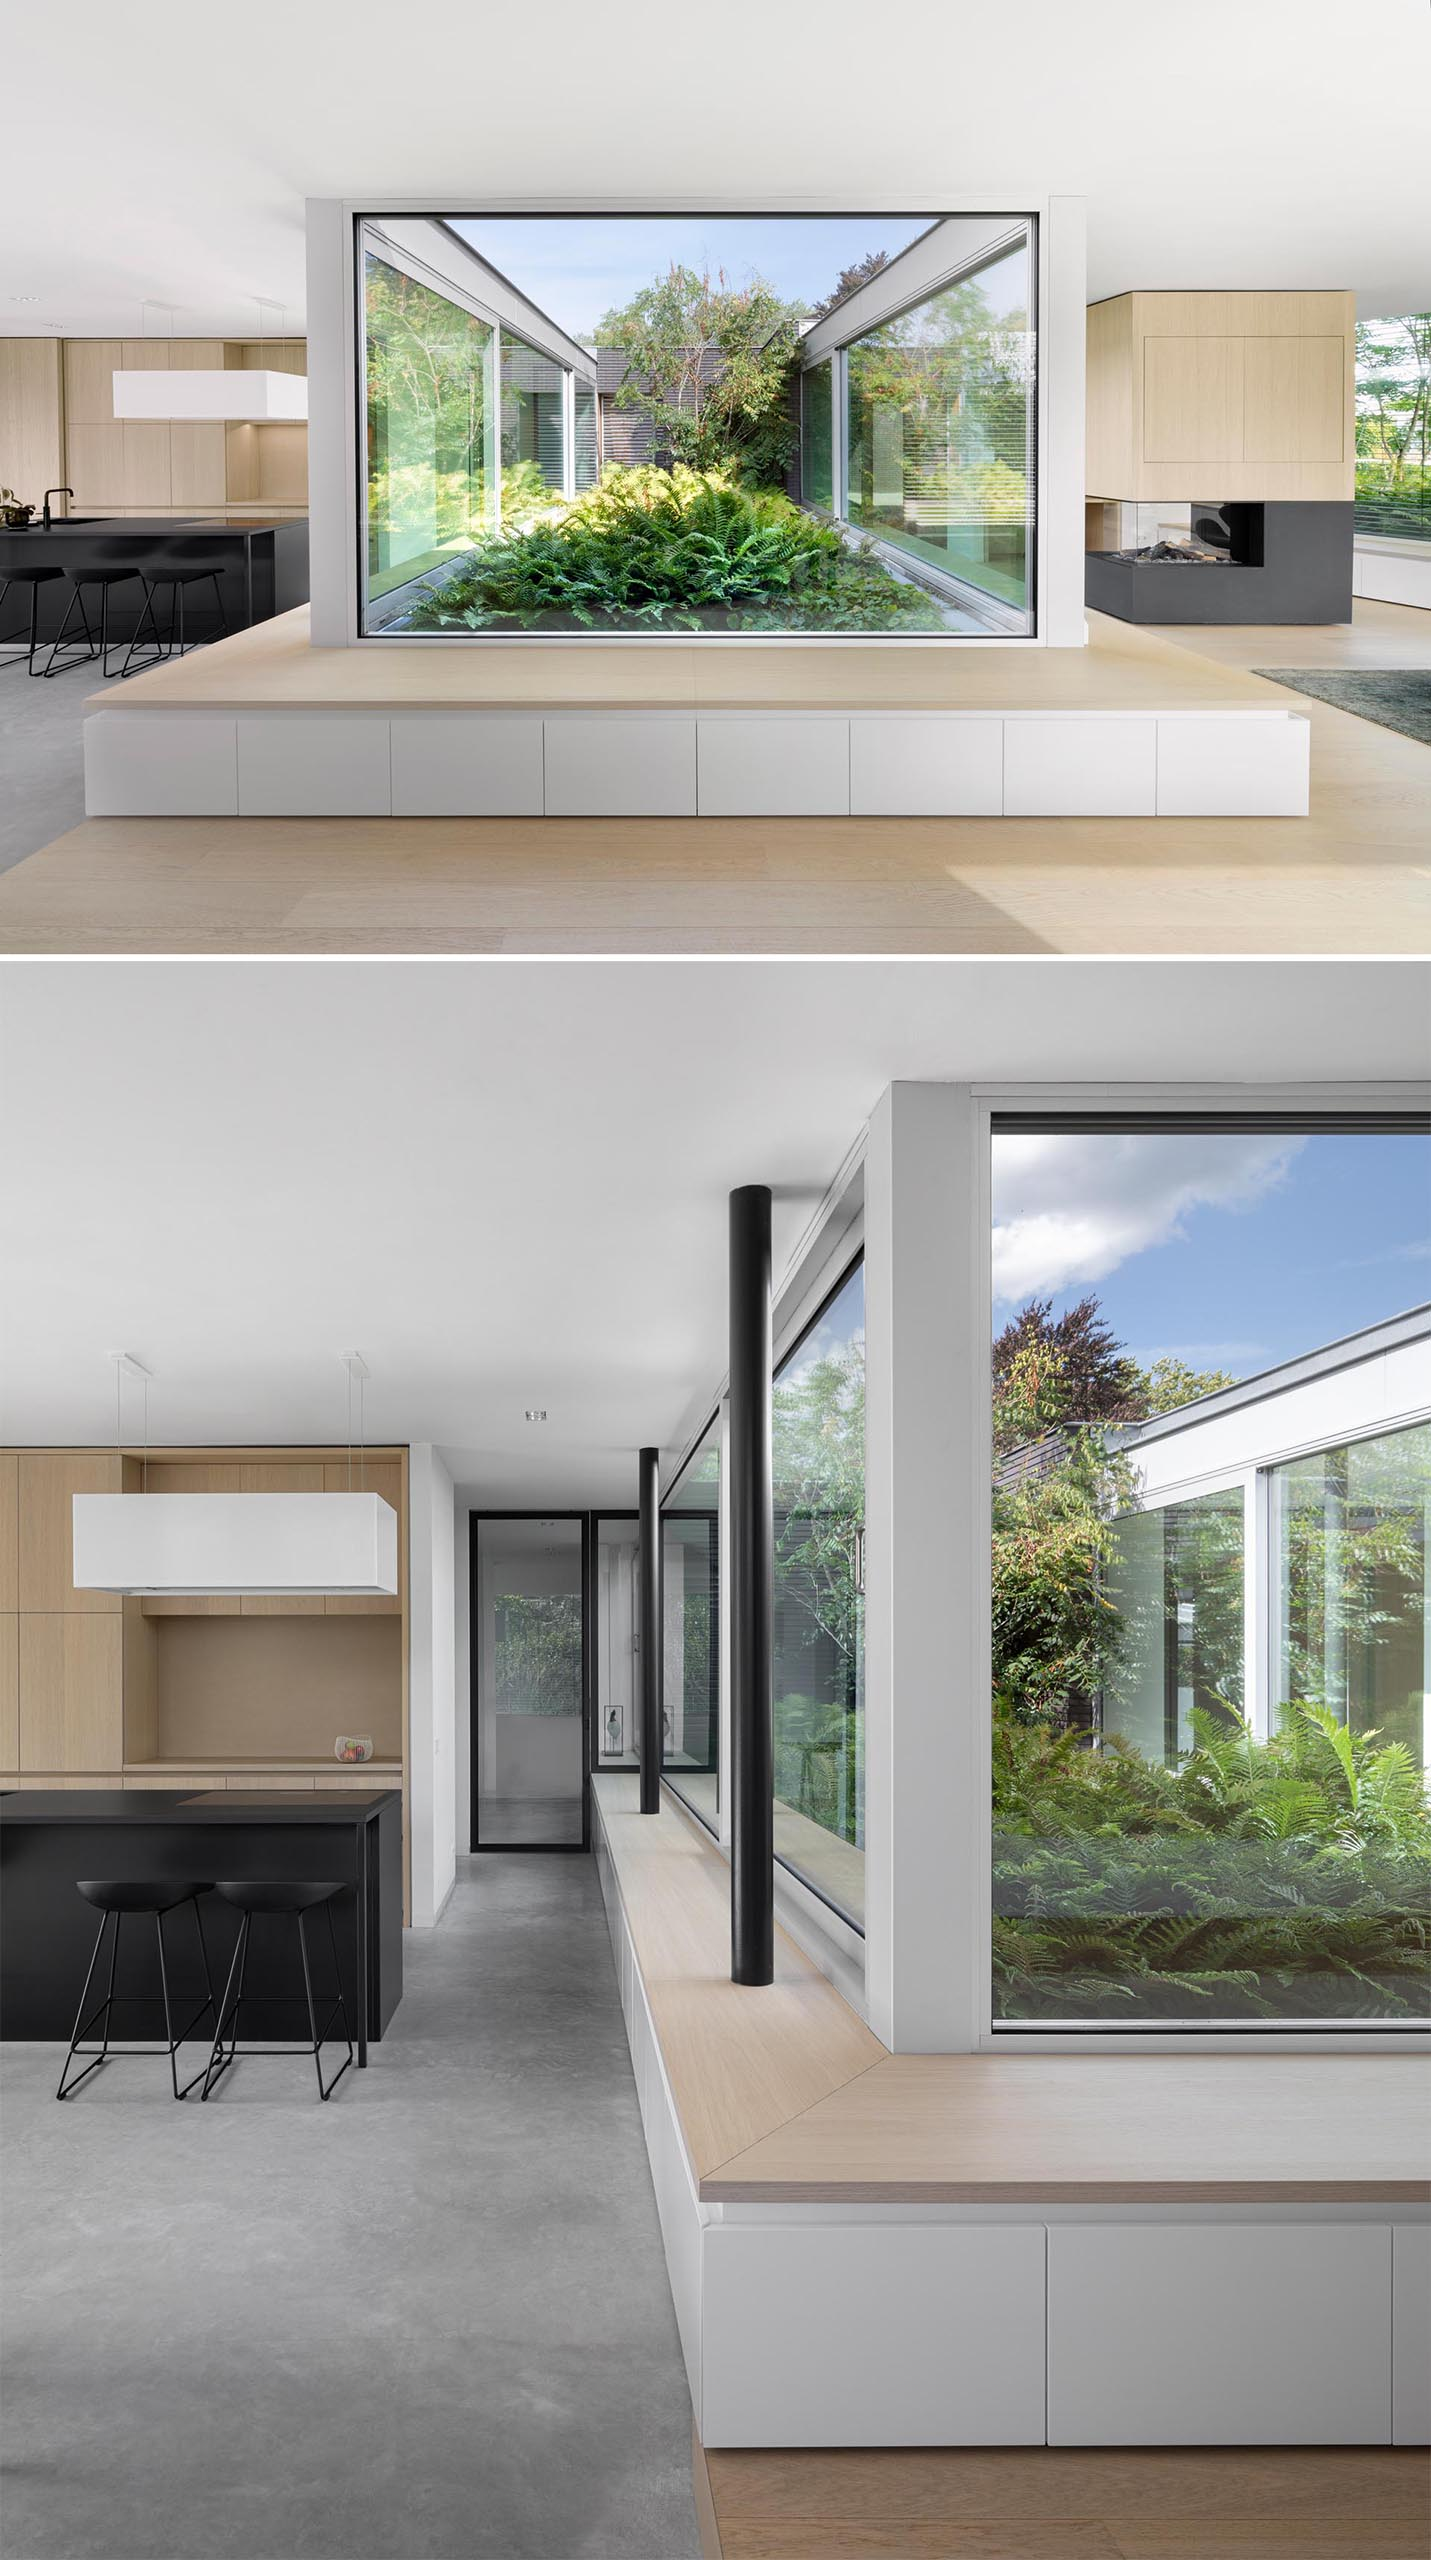 A modern home with a wood bench that  wraps around the windows and provide views of a planted garden.